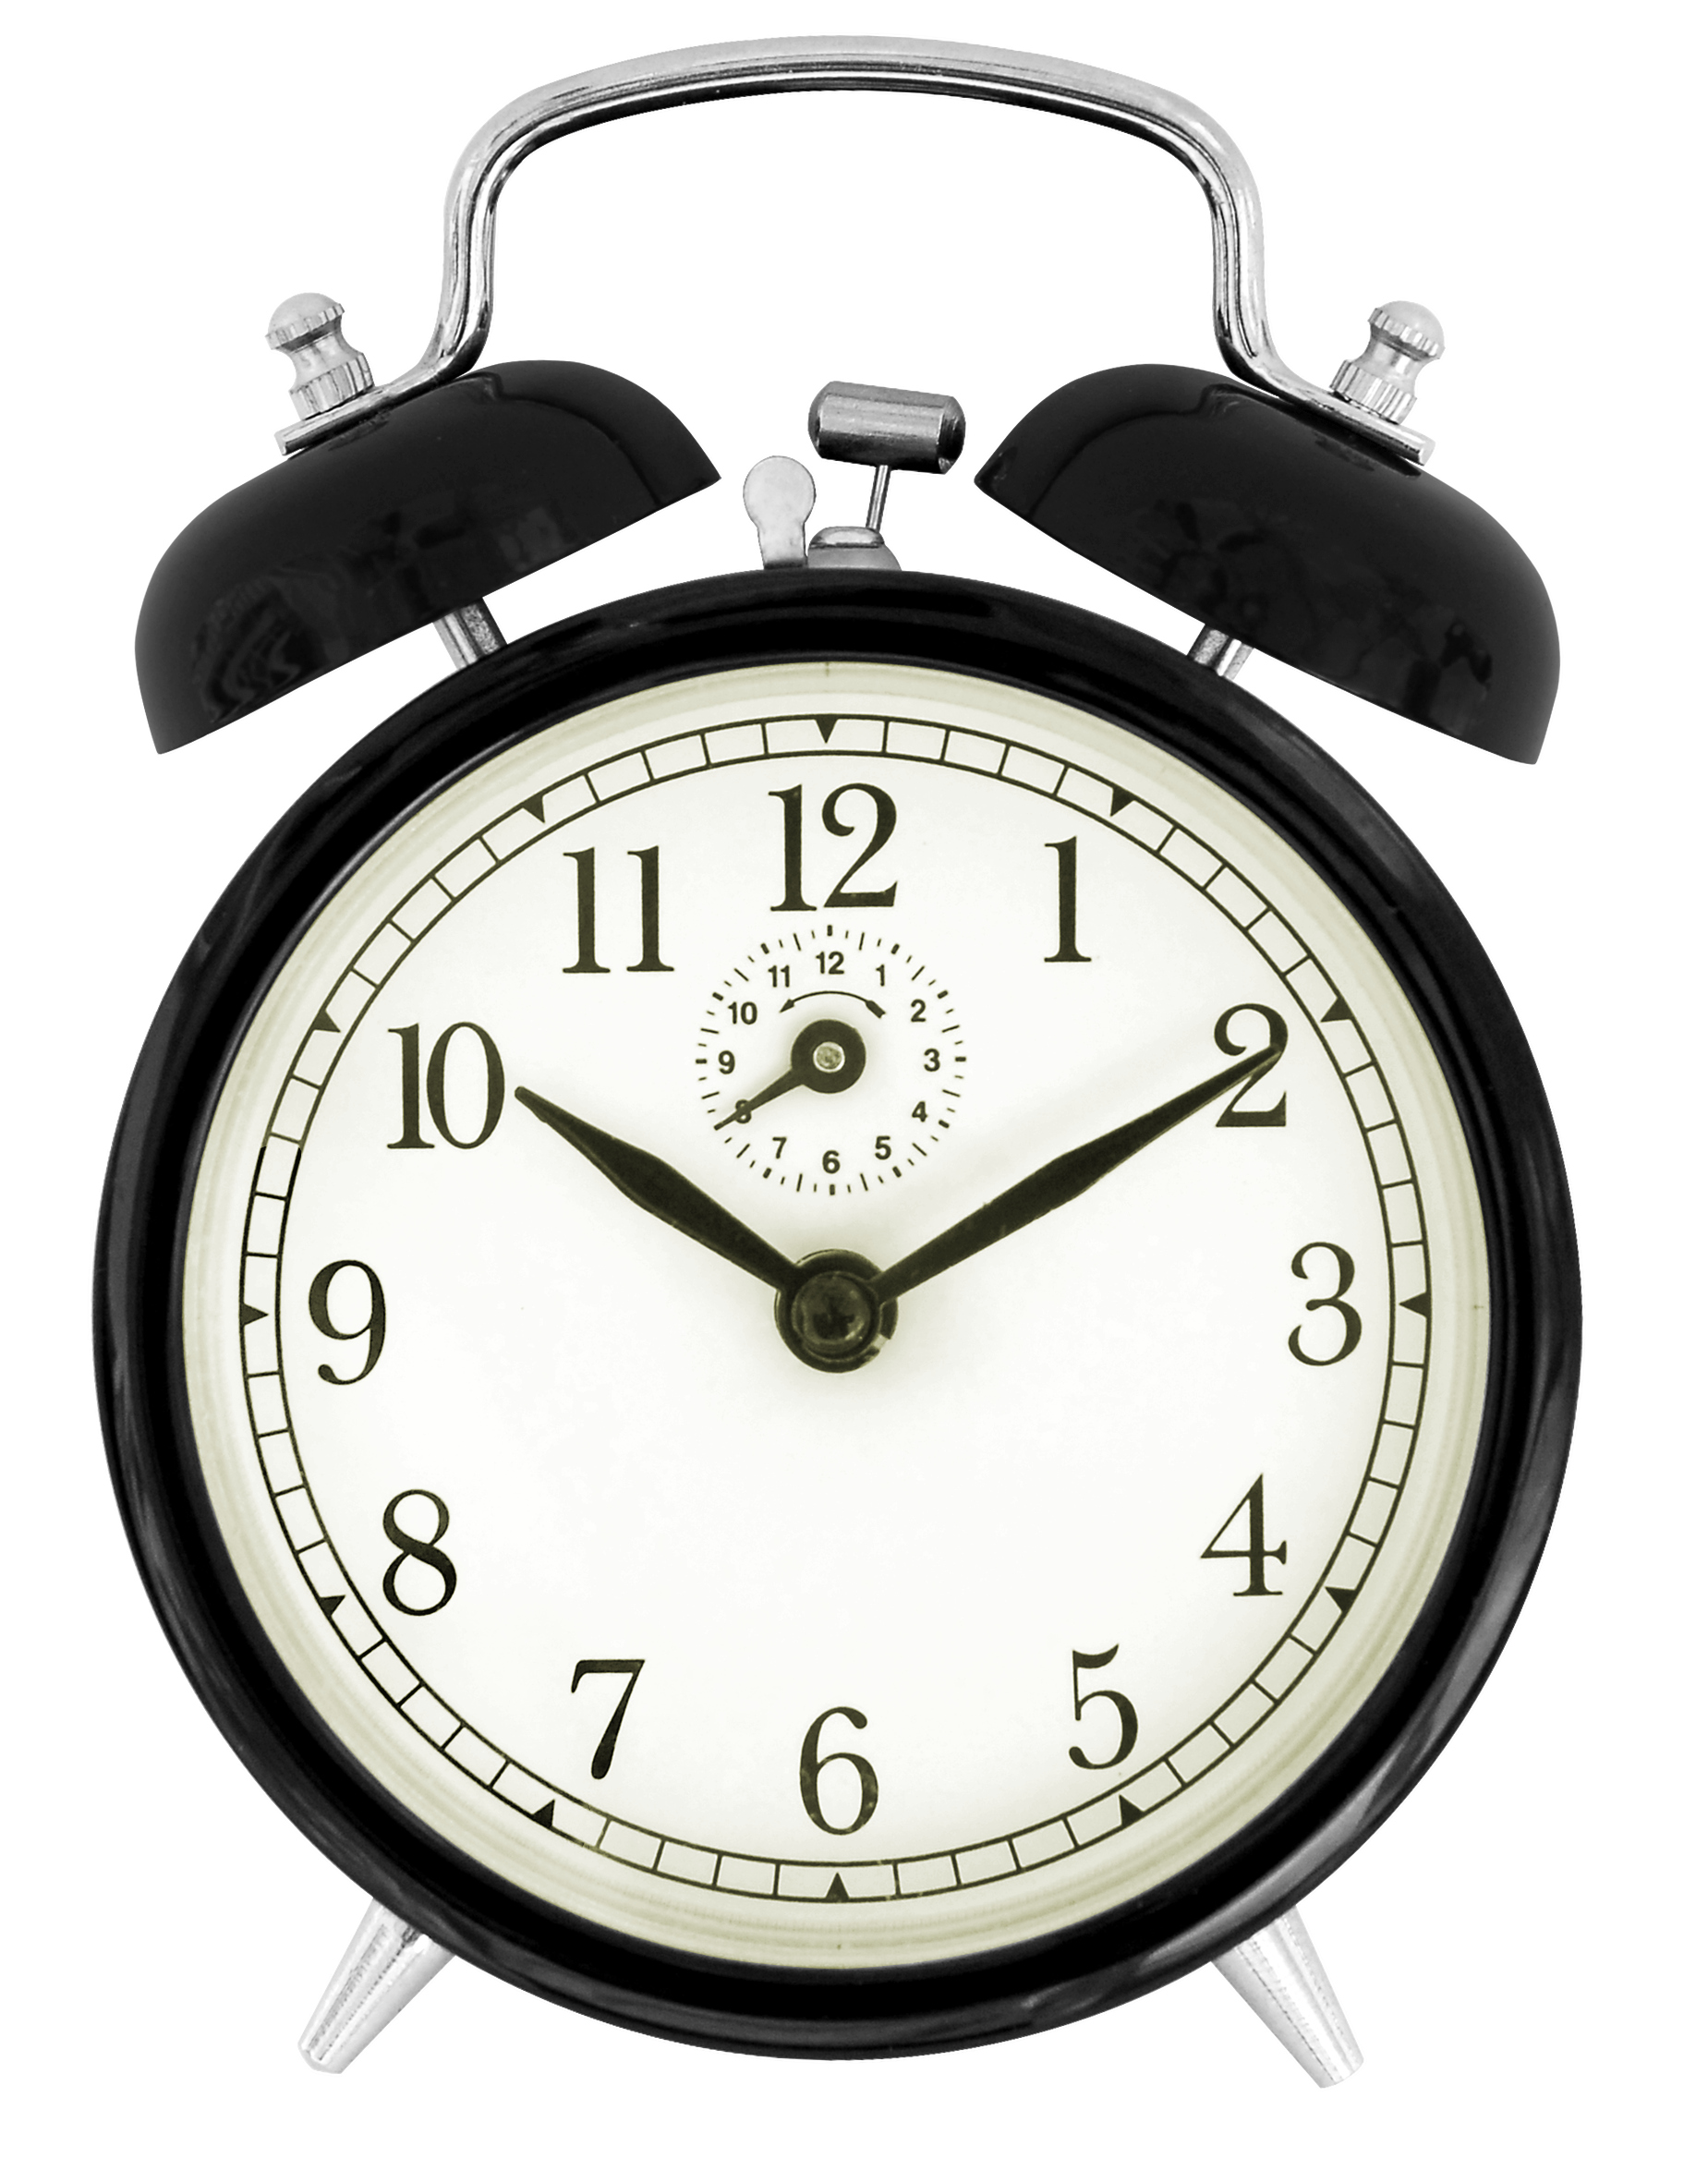 https://i0.wp.com/upload.wikimedia.org/wikipedia/commons/8/8b/2010-07-20_Black_windup_alarm_clock_face.jpg